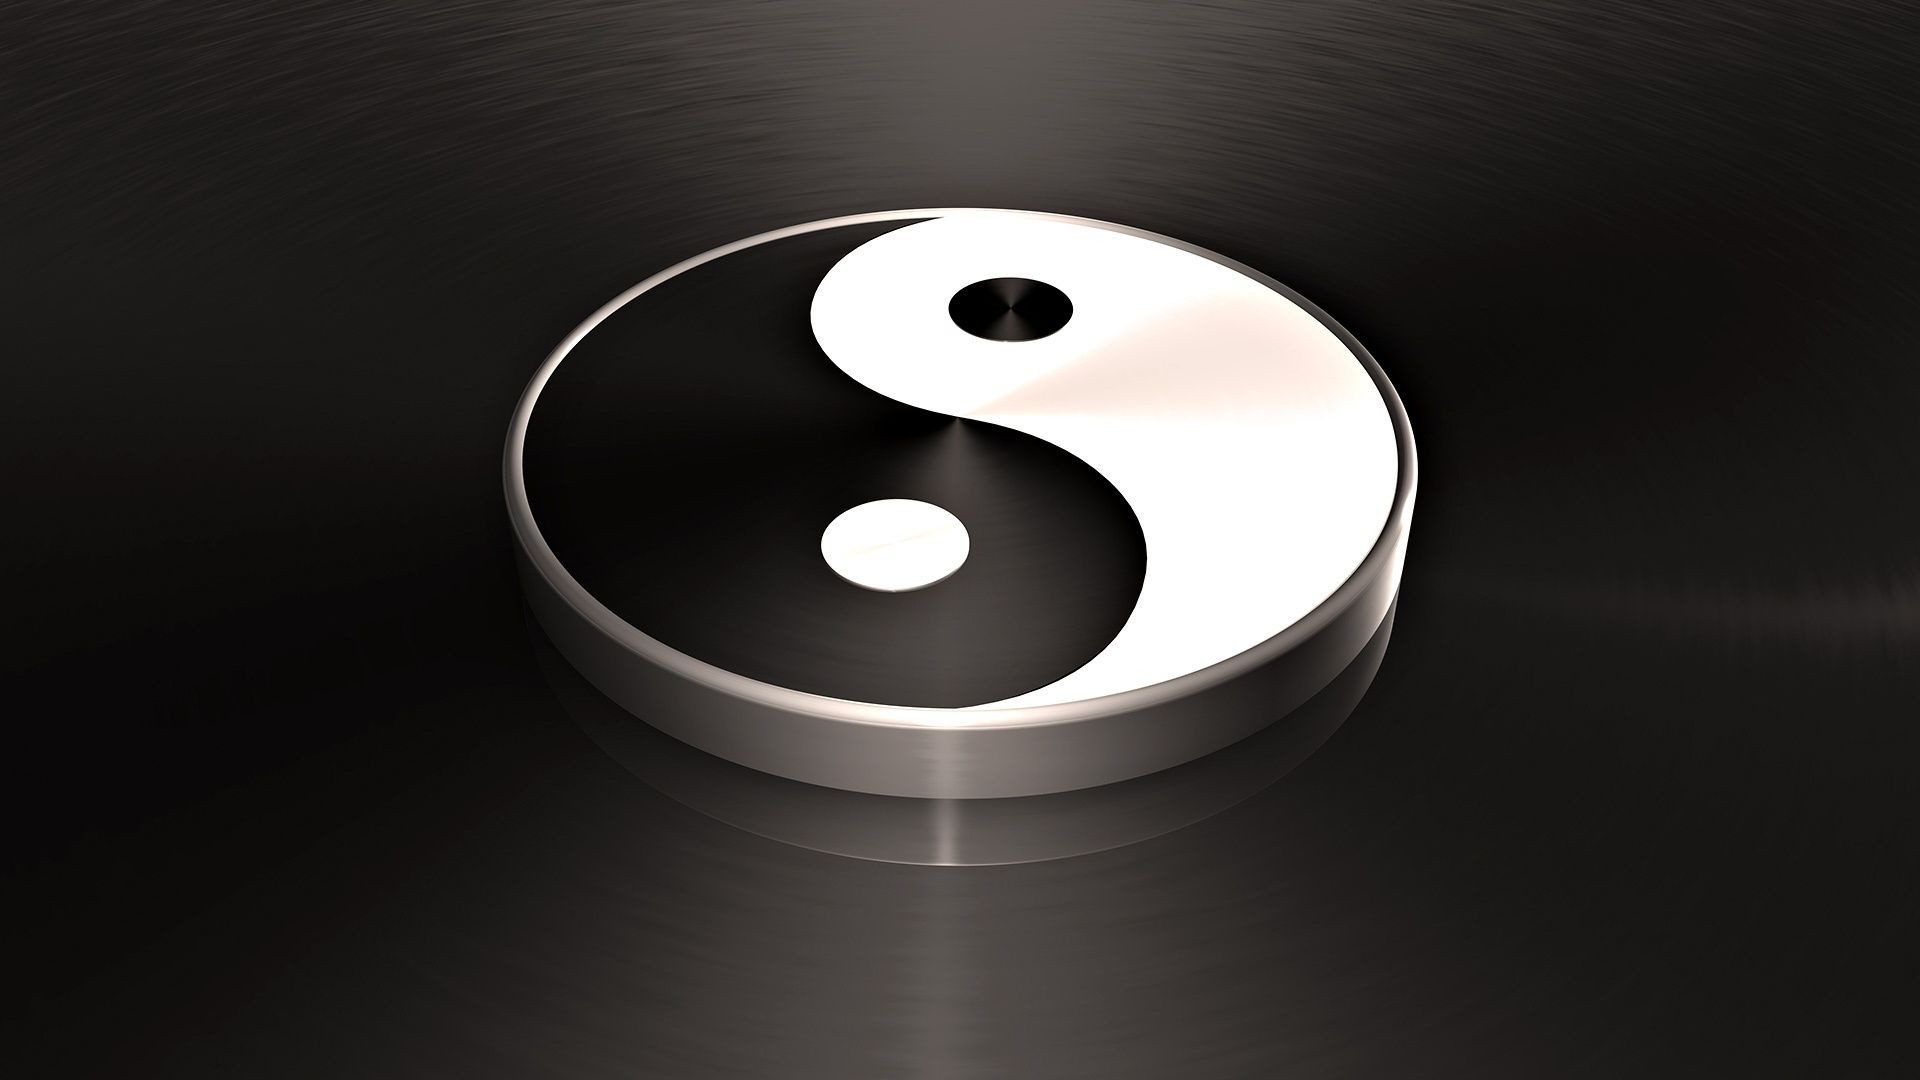 Yin Yang Black White Feng Shui Android Wallpapers For Free